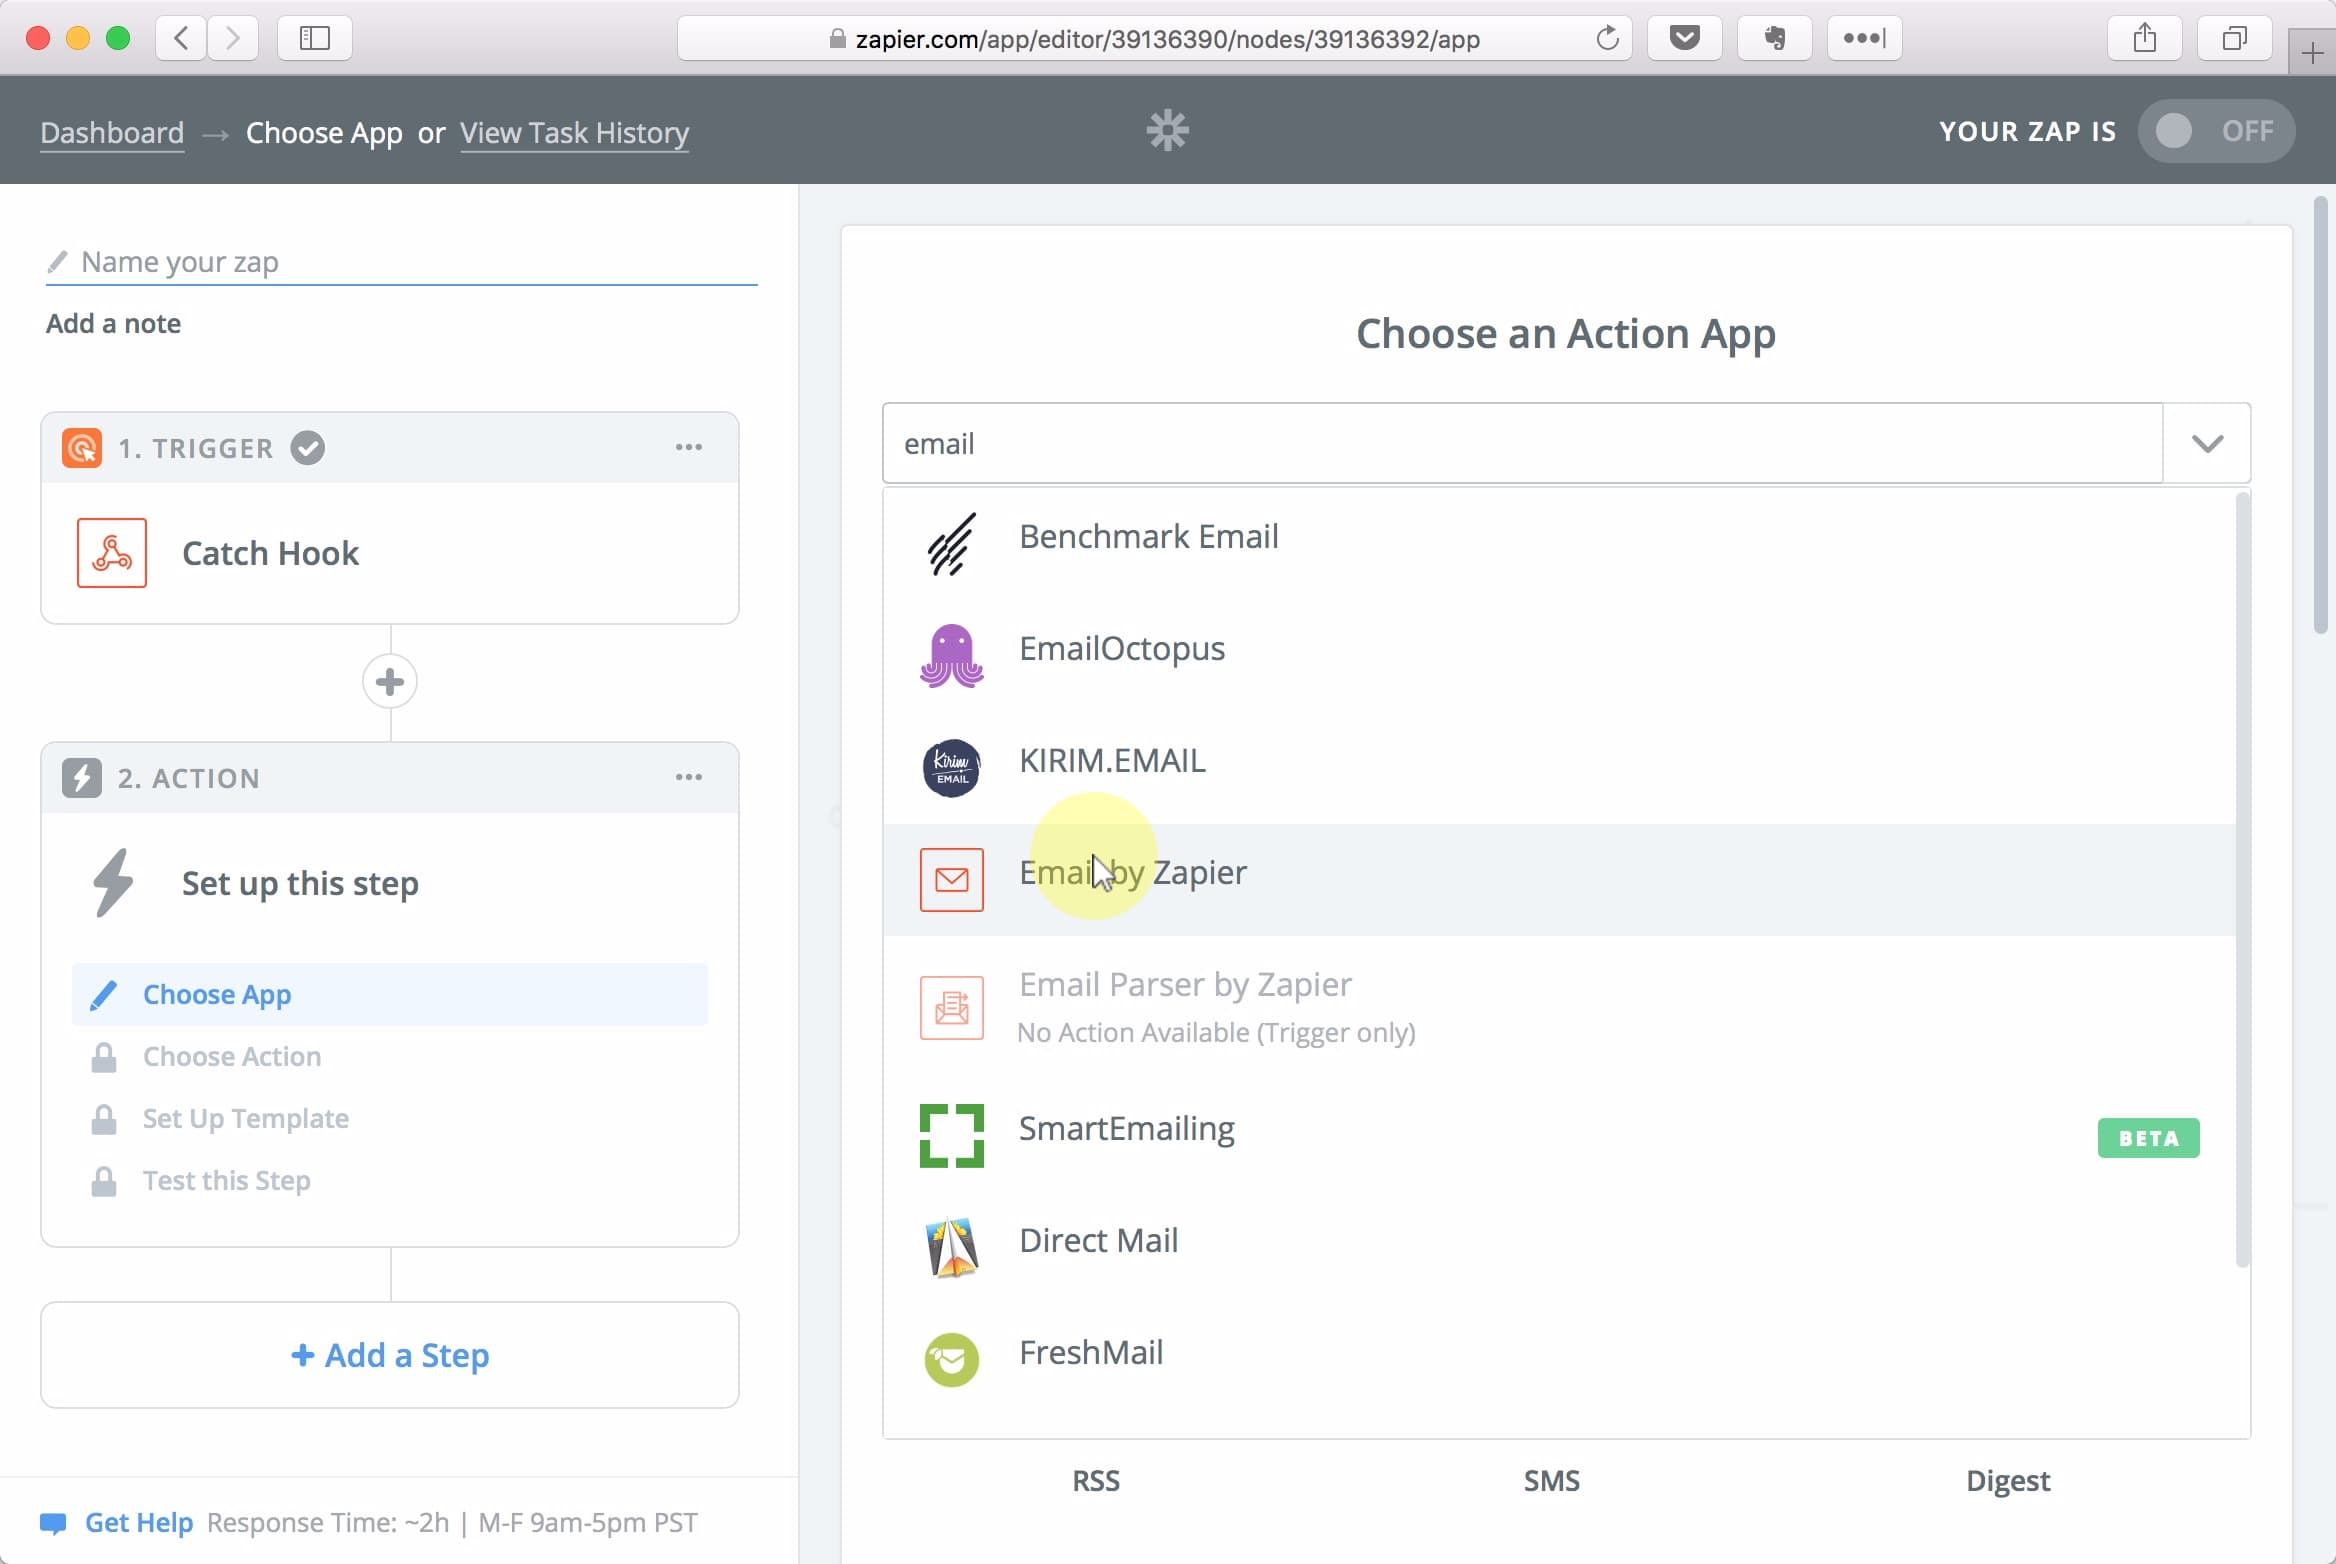 Seach for email and select the Email by Zapier option.;